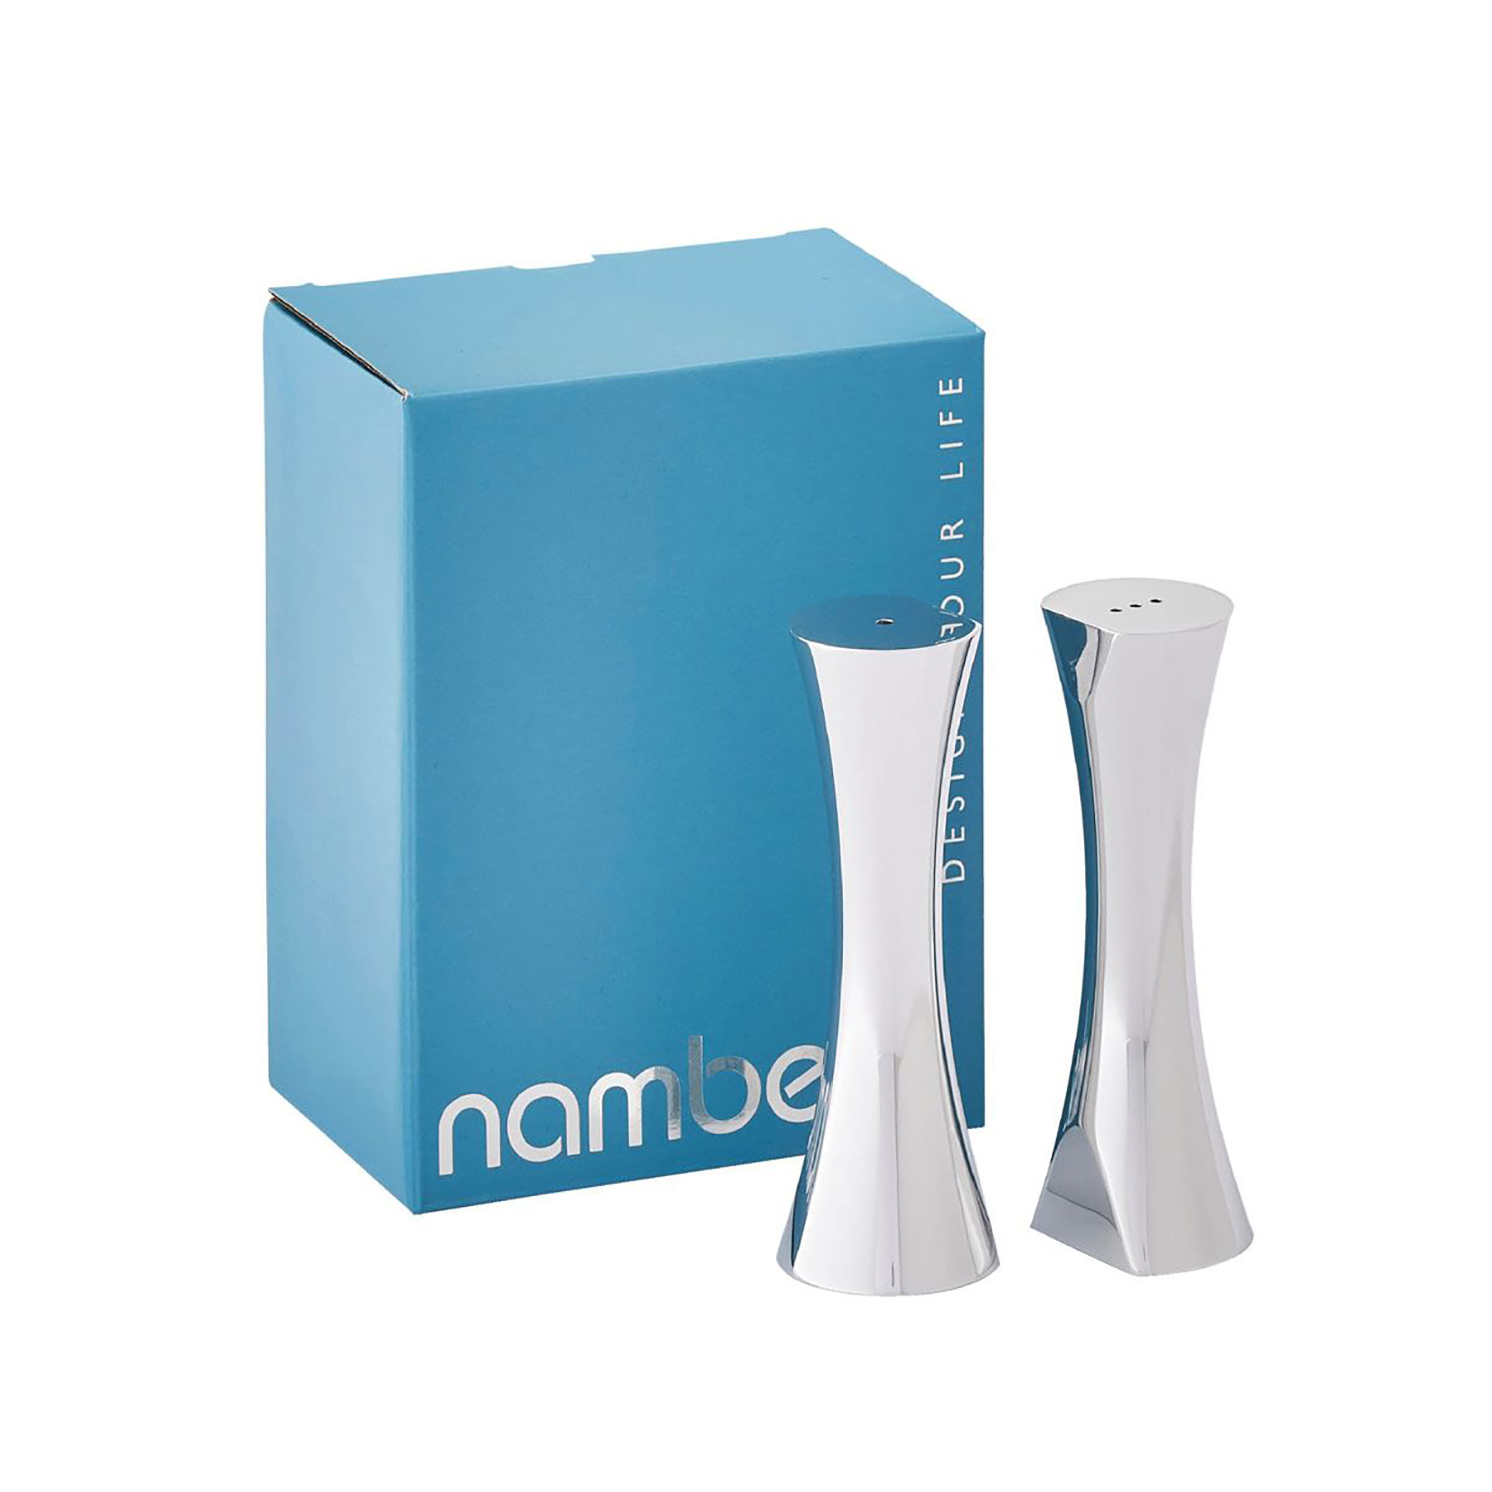 Nambe – Kissing Salt and Pepper Shakers in Gift Box